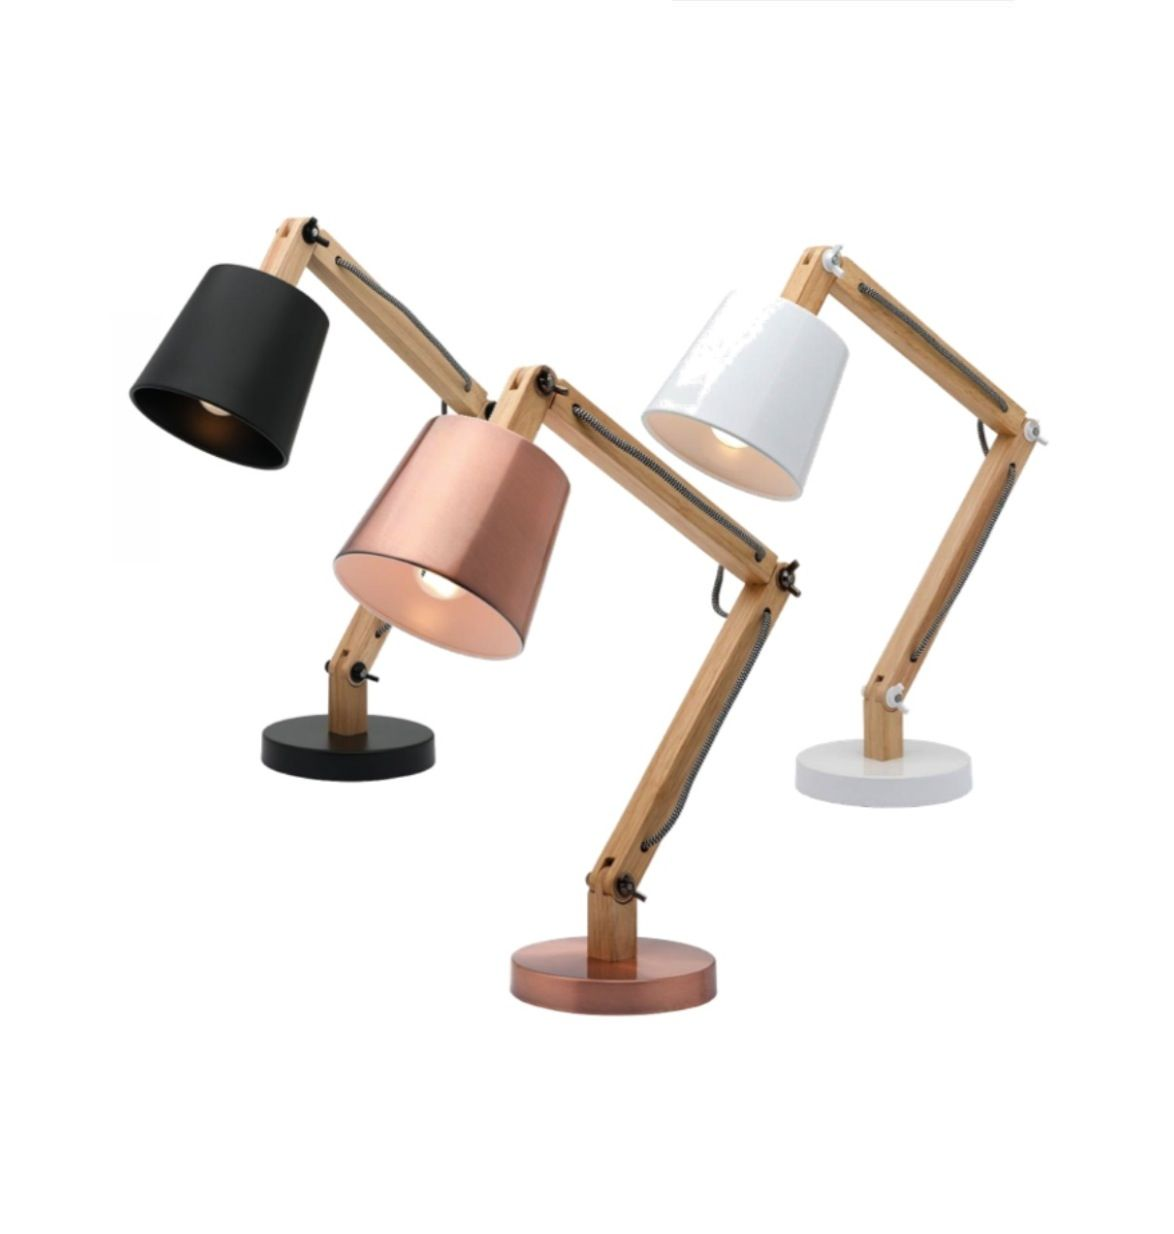 Piper table lamp natural timber black white or copper shade piper table lamp natural timber black white or copper shade mercator a33911 13900 geotapseo Gallery